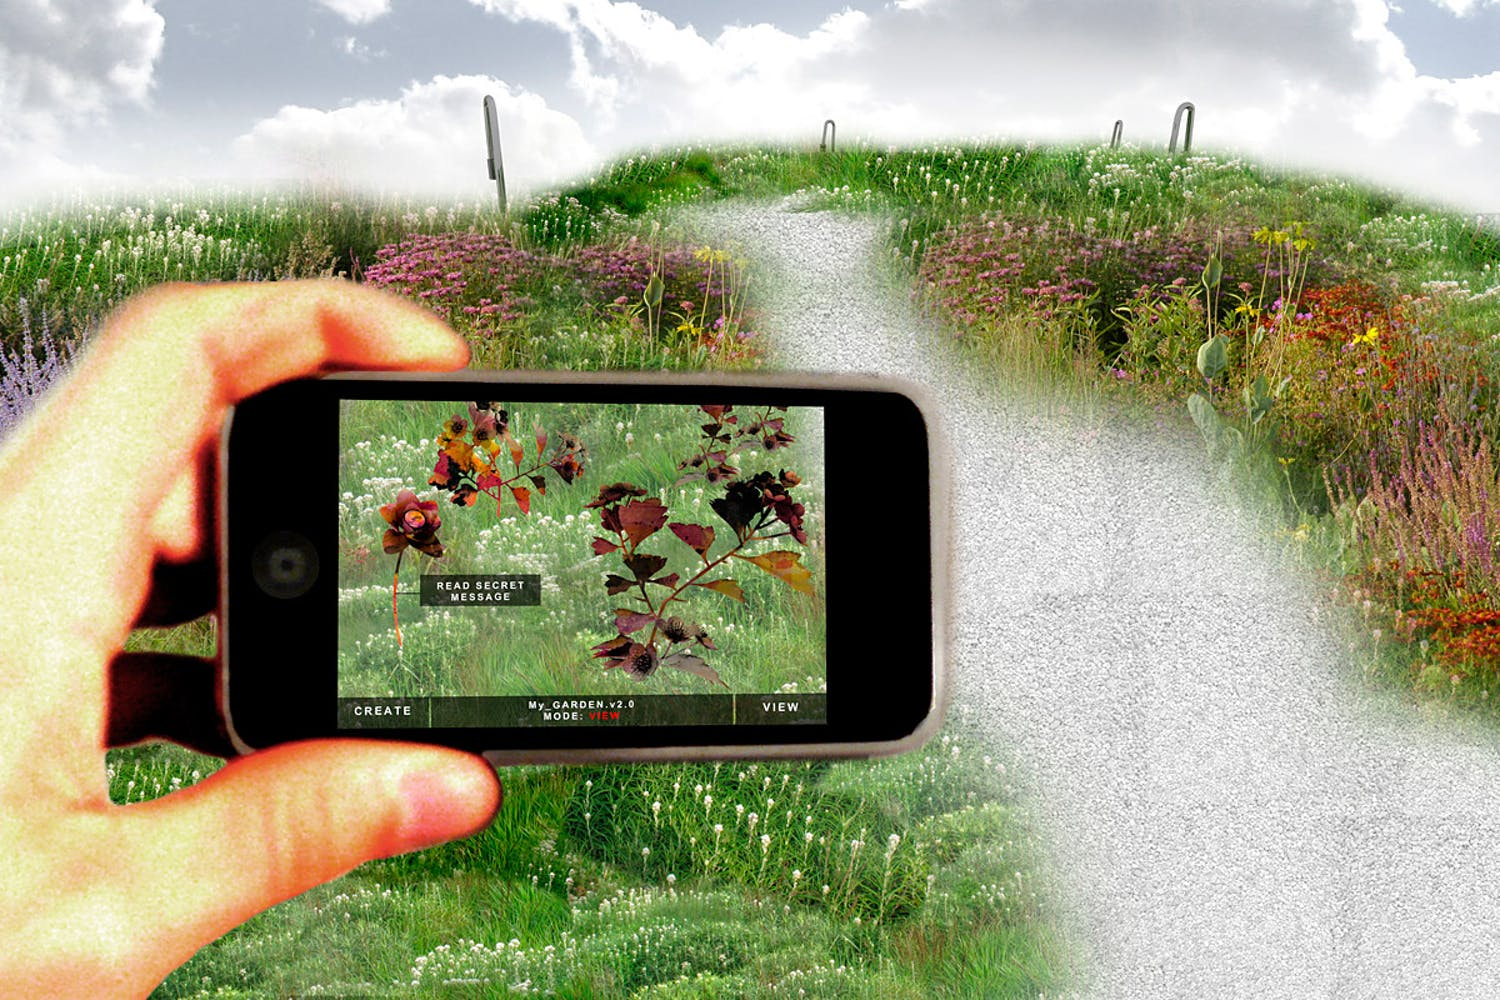 Reinventing the Concepts of Gardening with Augmented Reality